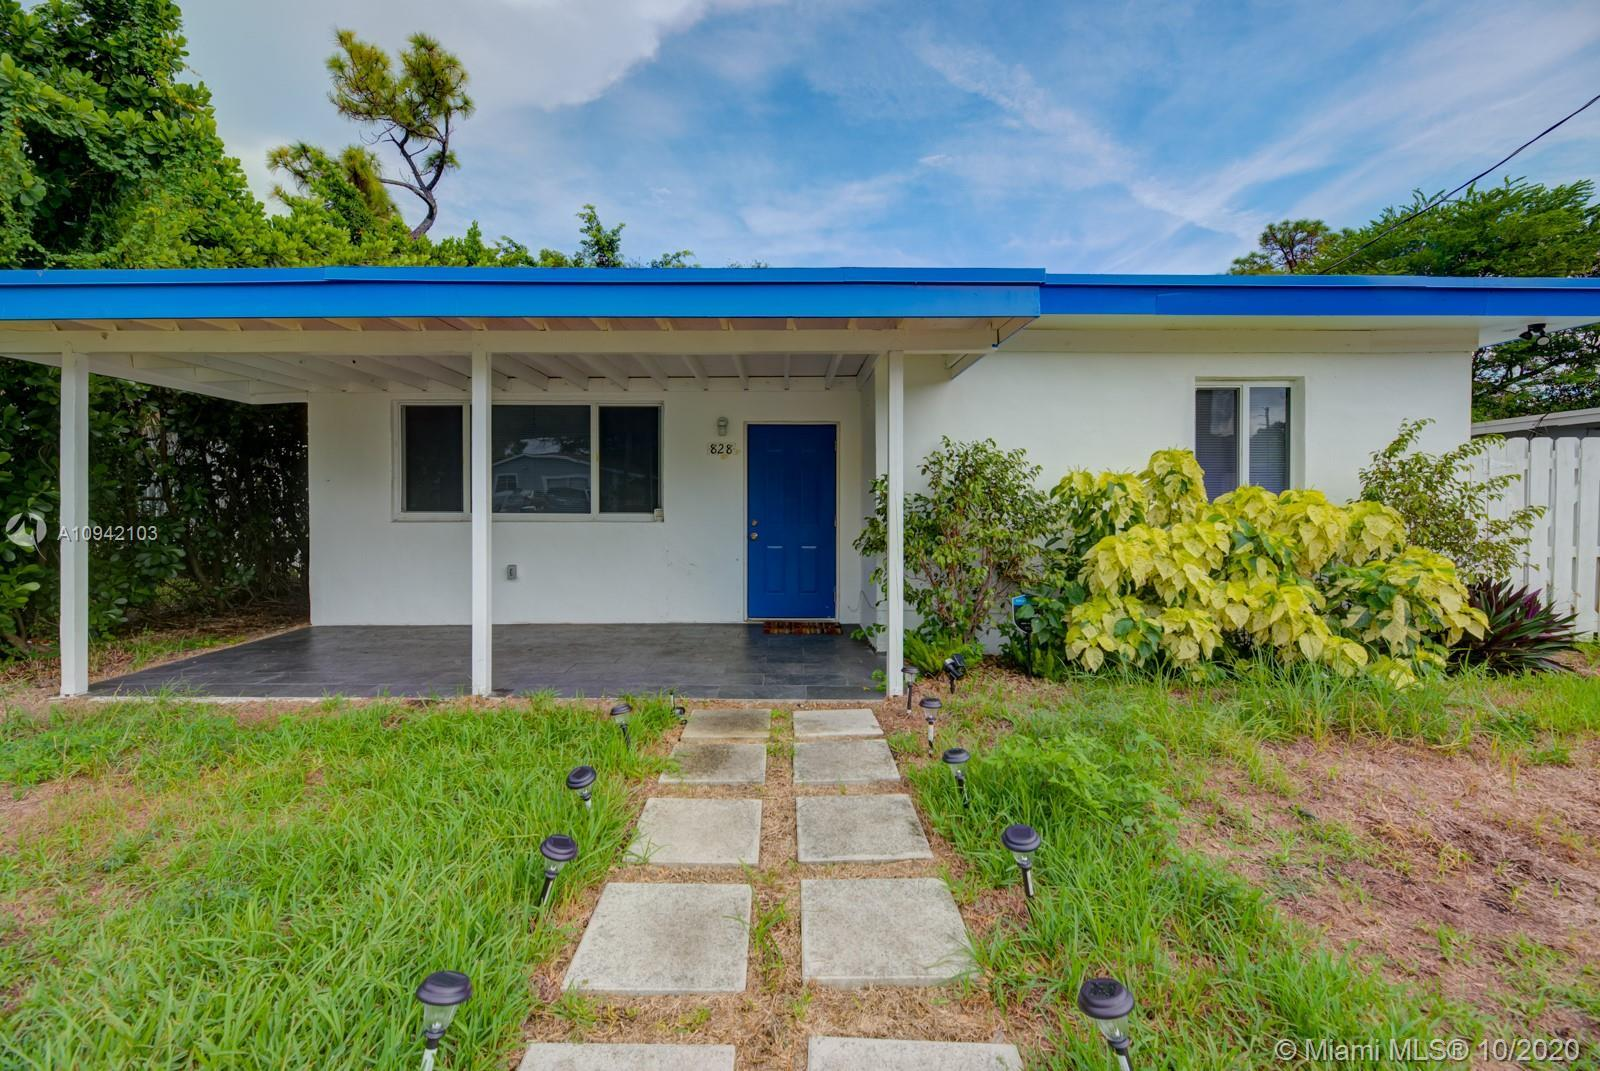 Move-in ready! Brand new remodeled with 3 bedrooms and 2 baths. All new no expense spared from top t